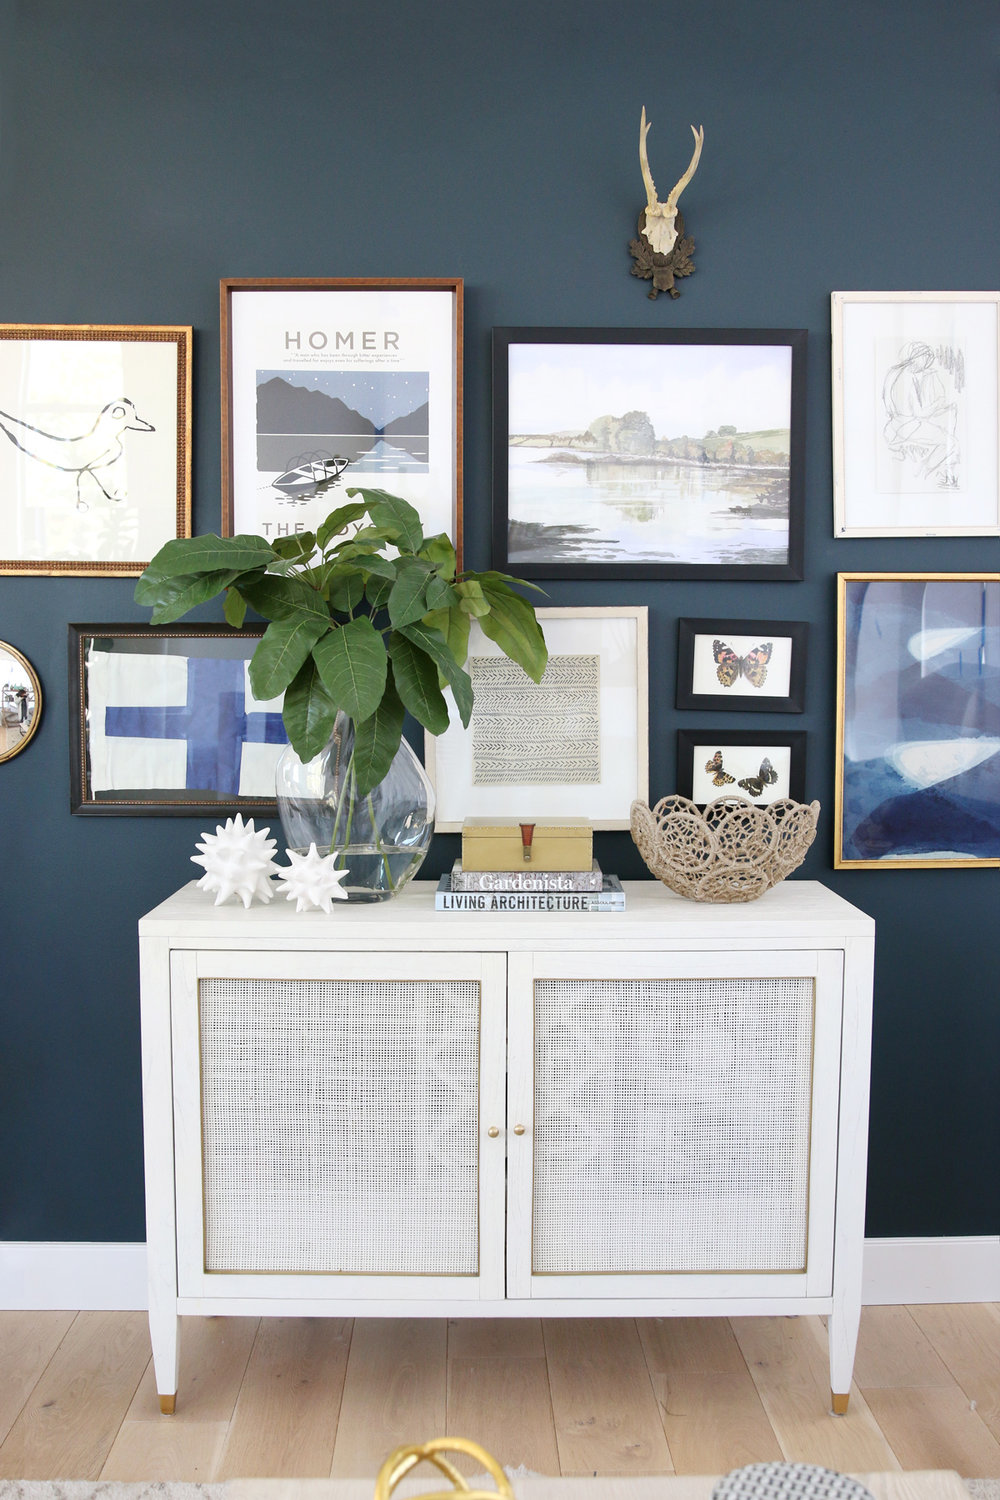 HOW+TO+CREATE+ECLECTIC+GALLERY+WALL.jpg